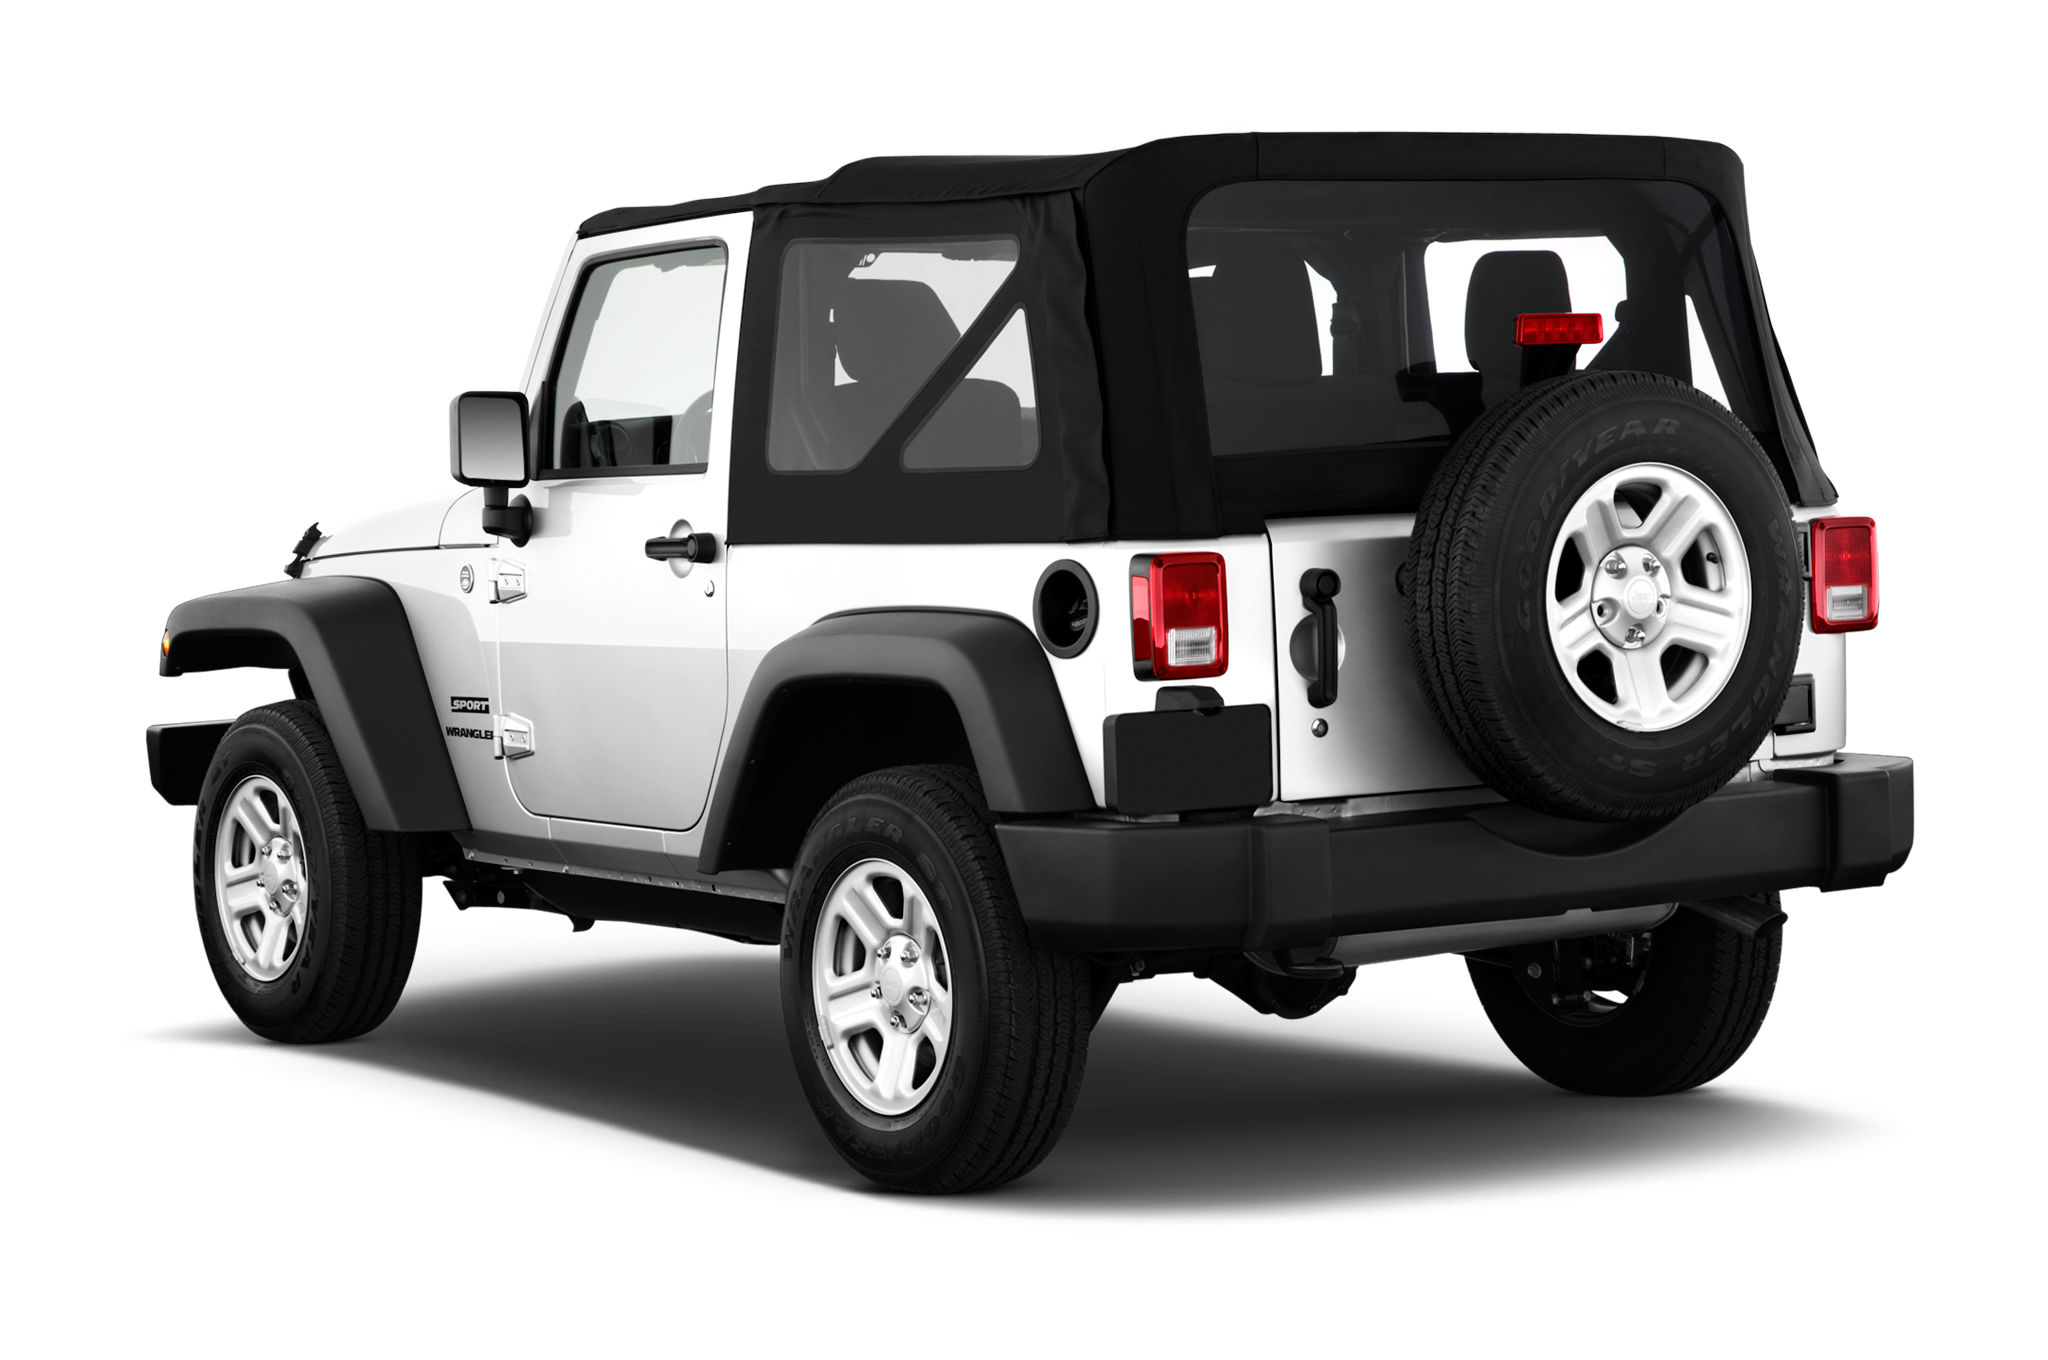 Wrangler first look. Jeep silouette png clip art transparent download